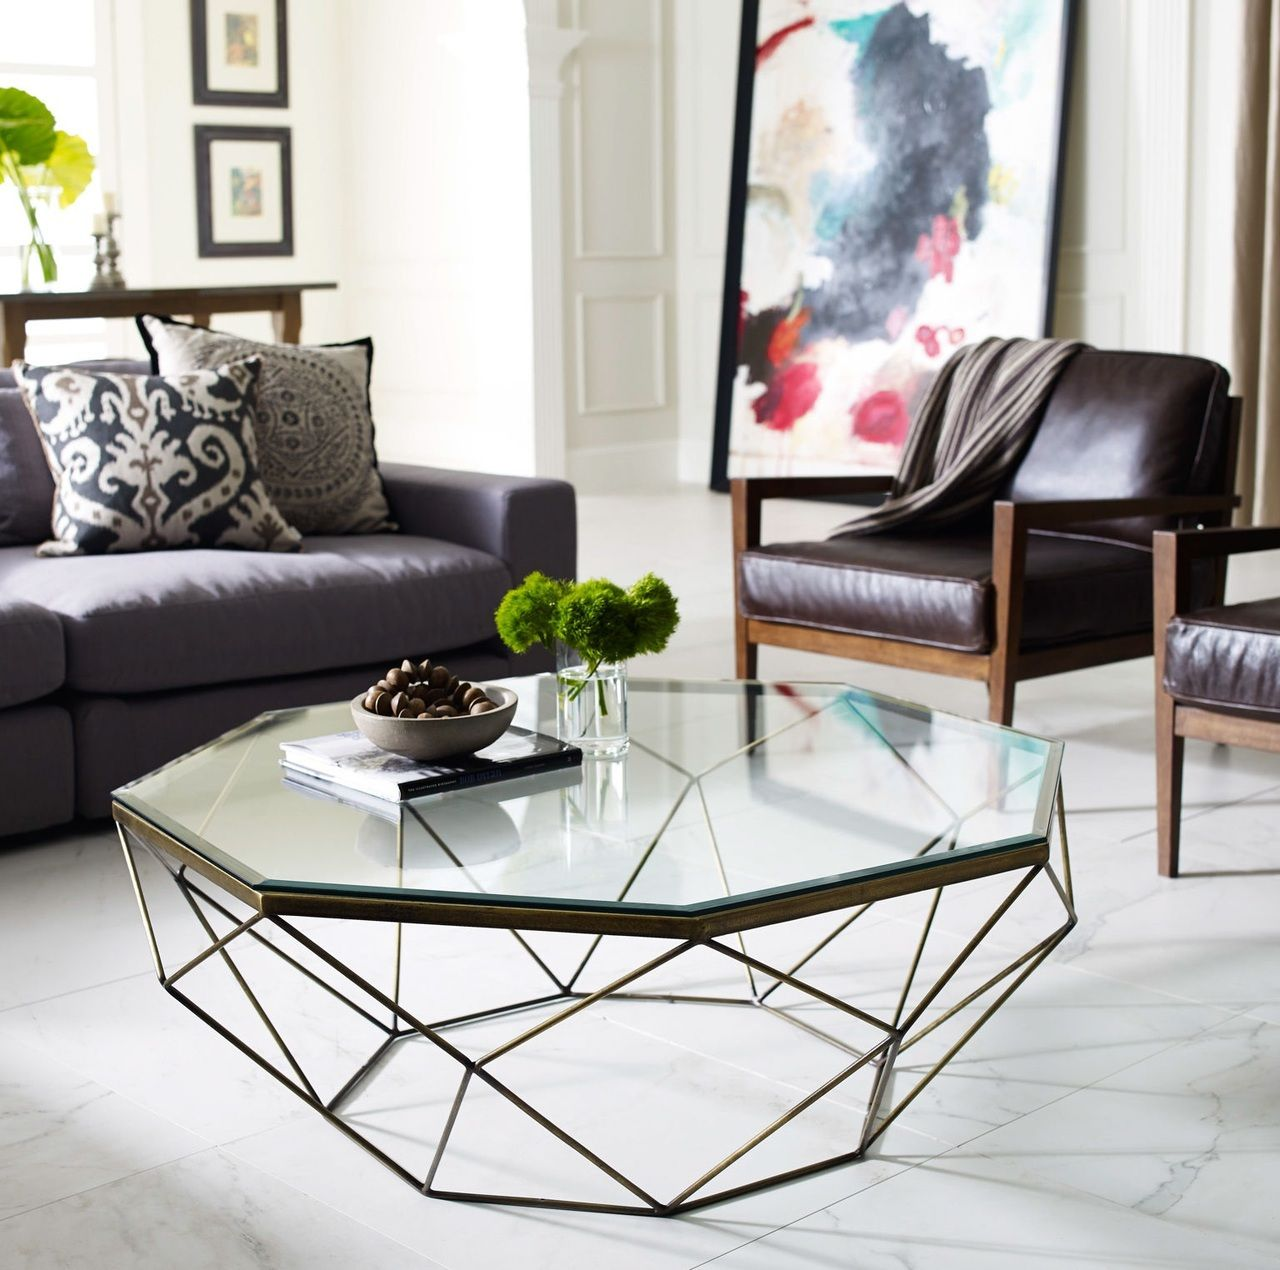 Living Room Ideas 2015 Top 5 Mid Century Modern Sofa: Geometric Antique Brass Coffee Table With Glass Top